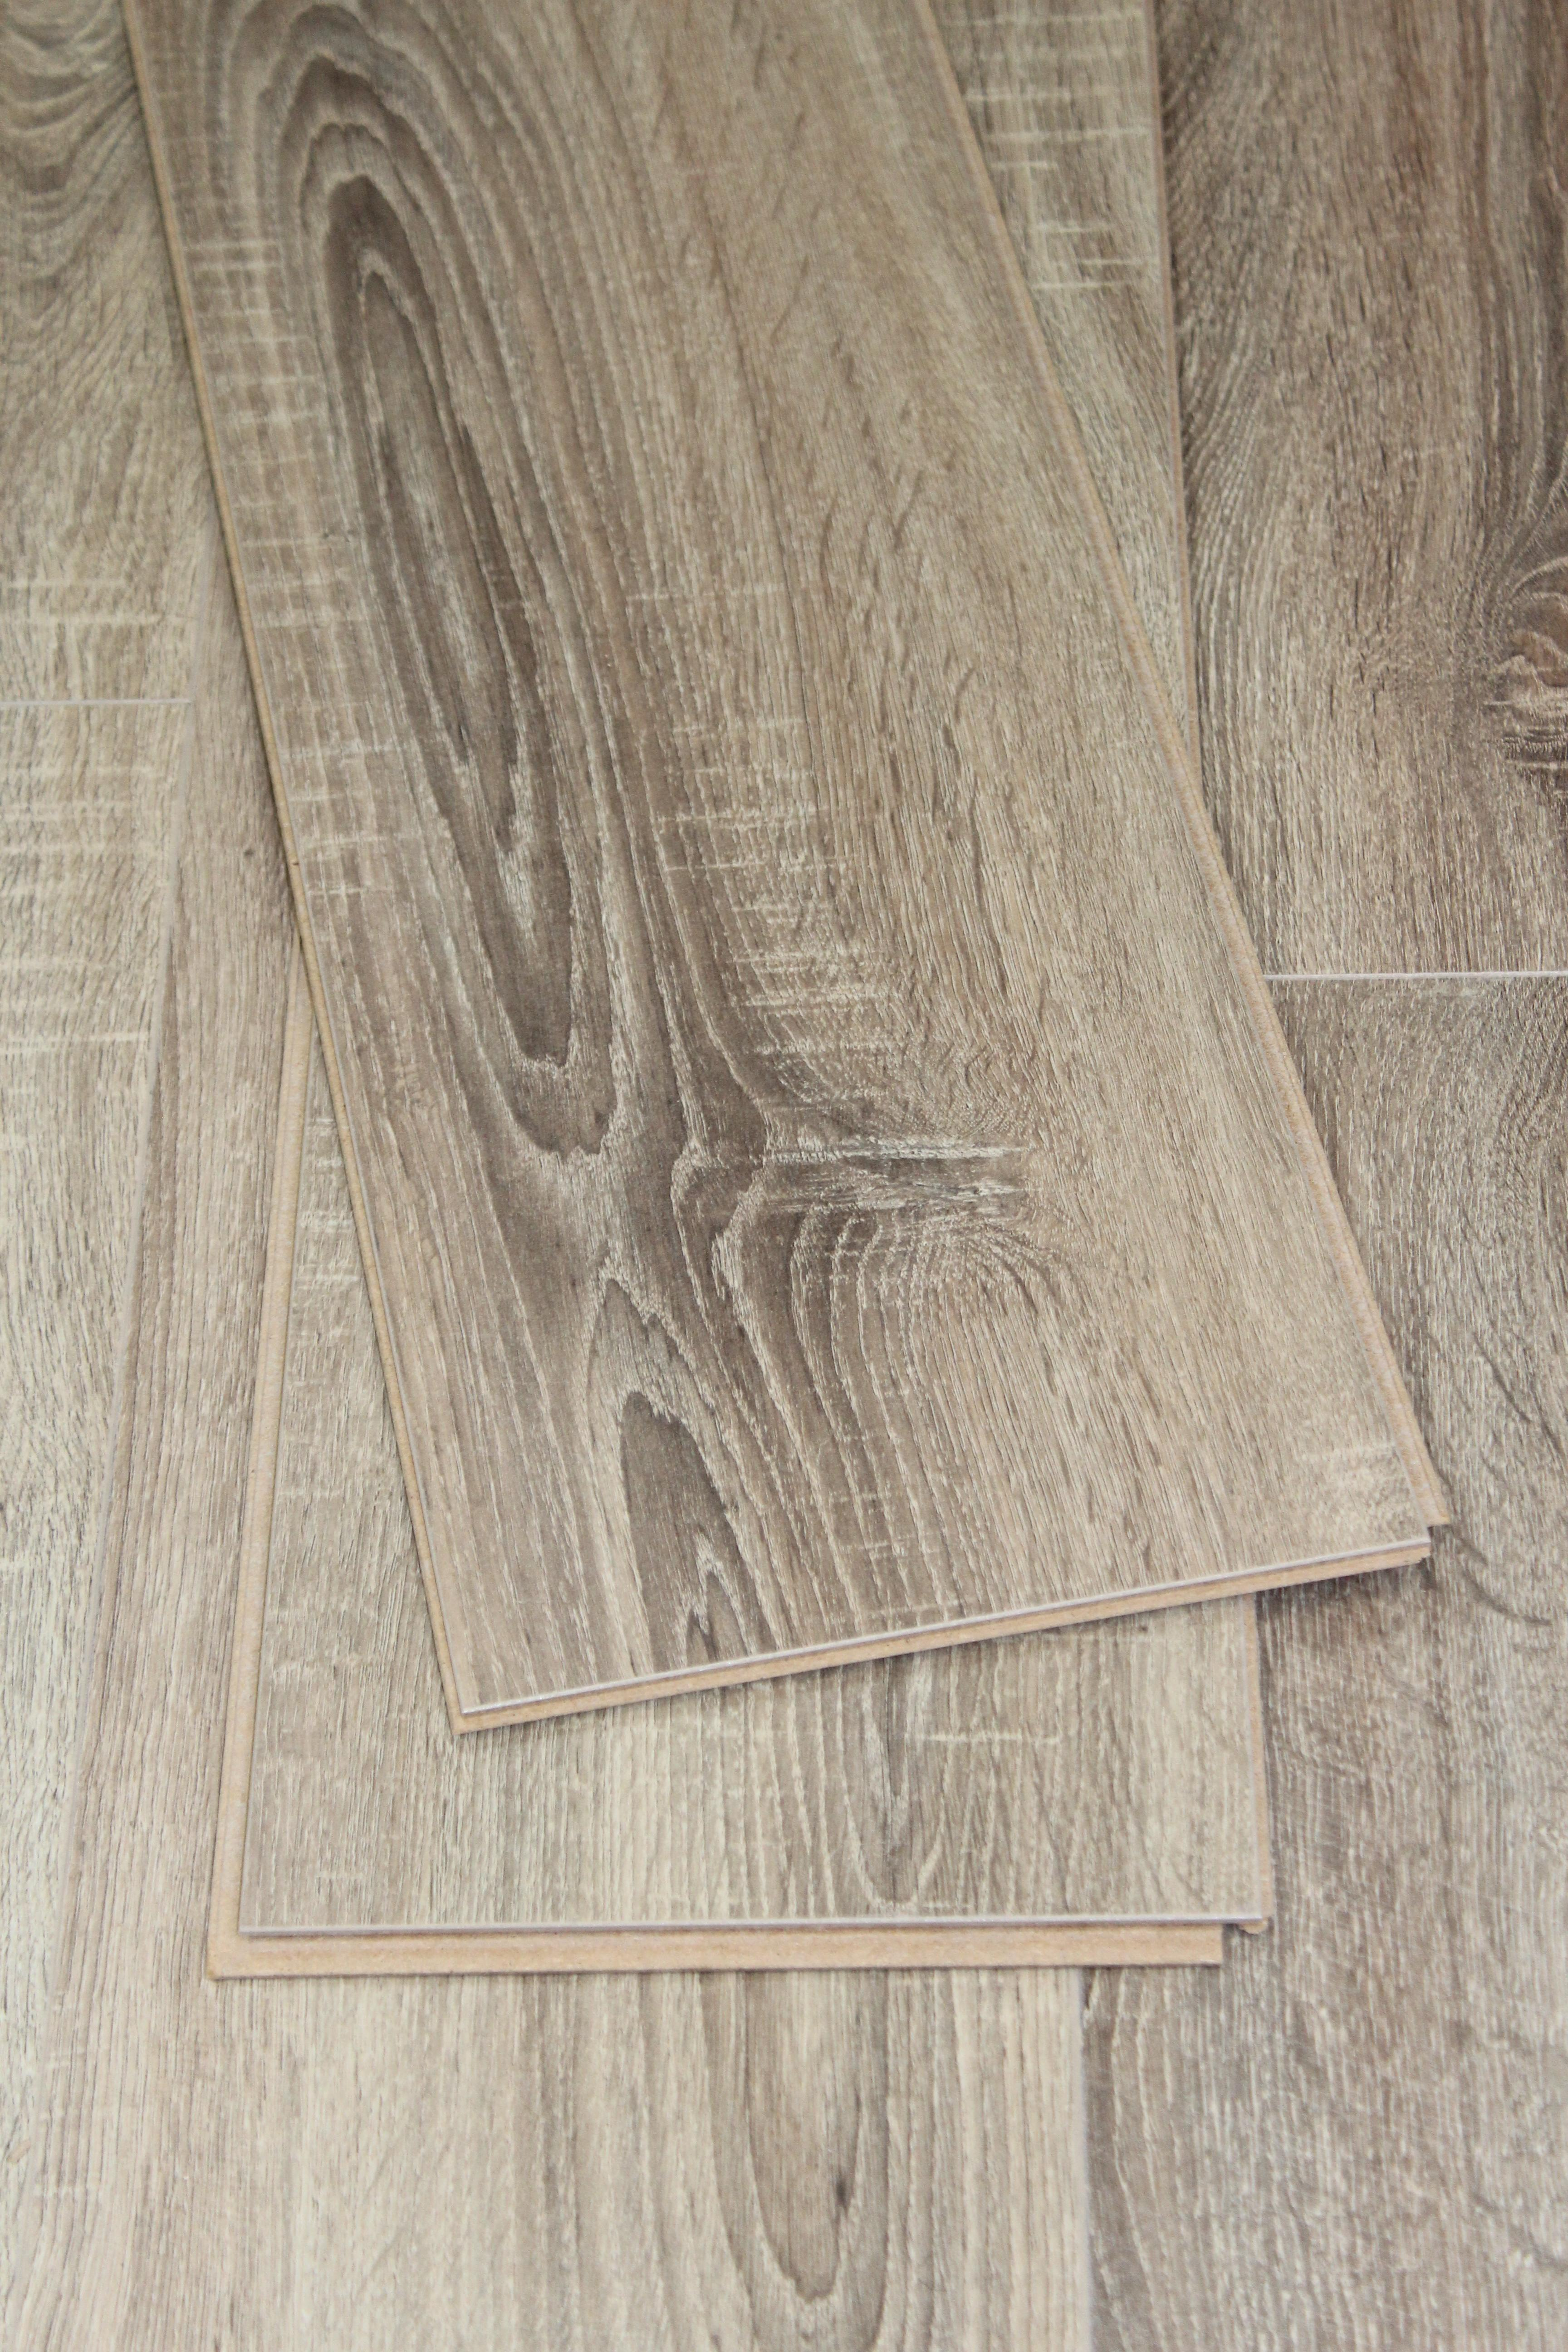 Baelea Concerto Drift Oak with Saw Cuts 8mm Laminate Flooring Bevel